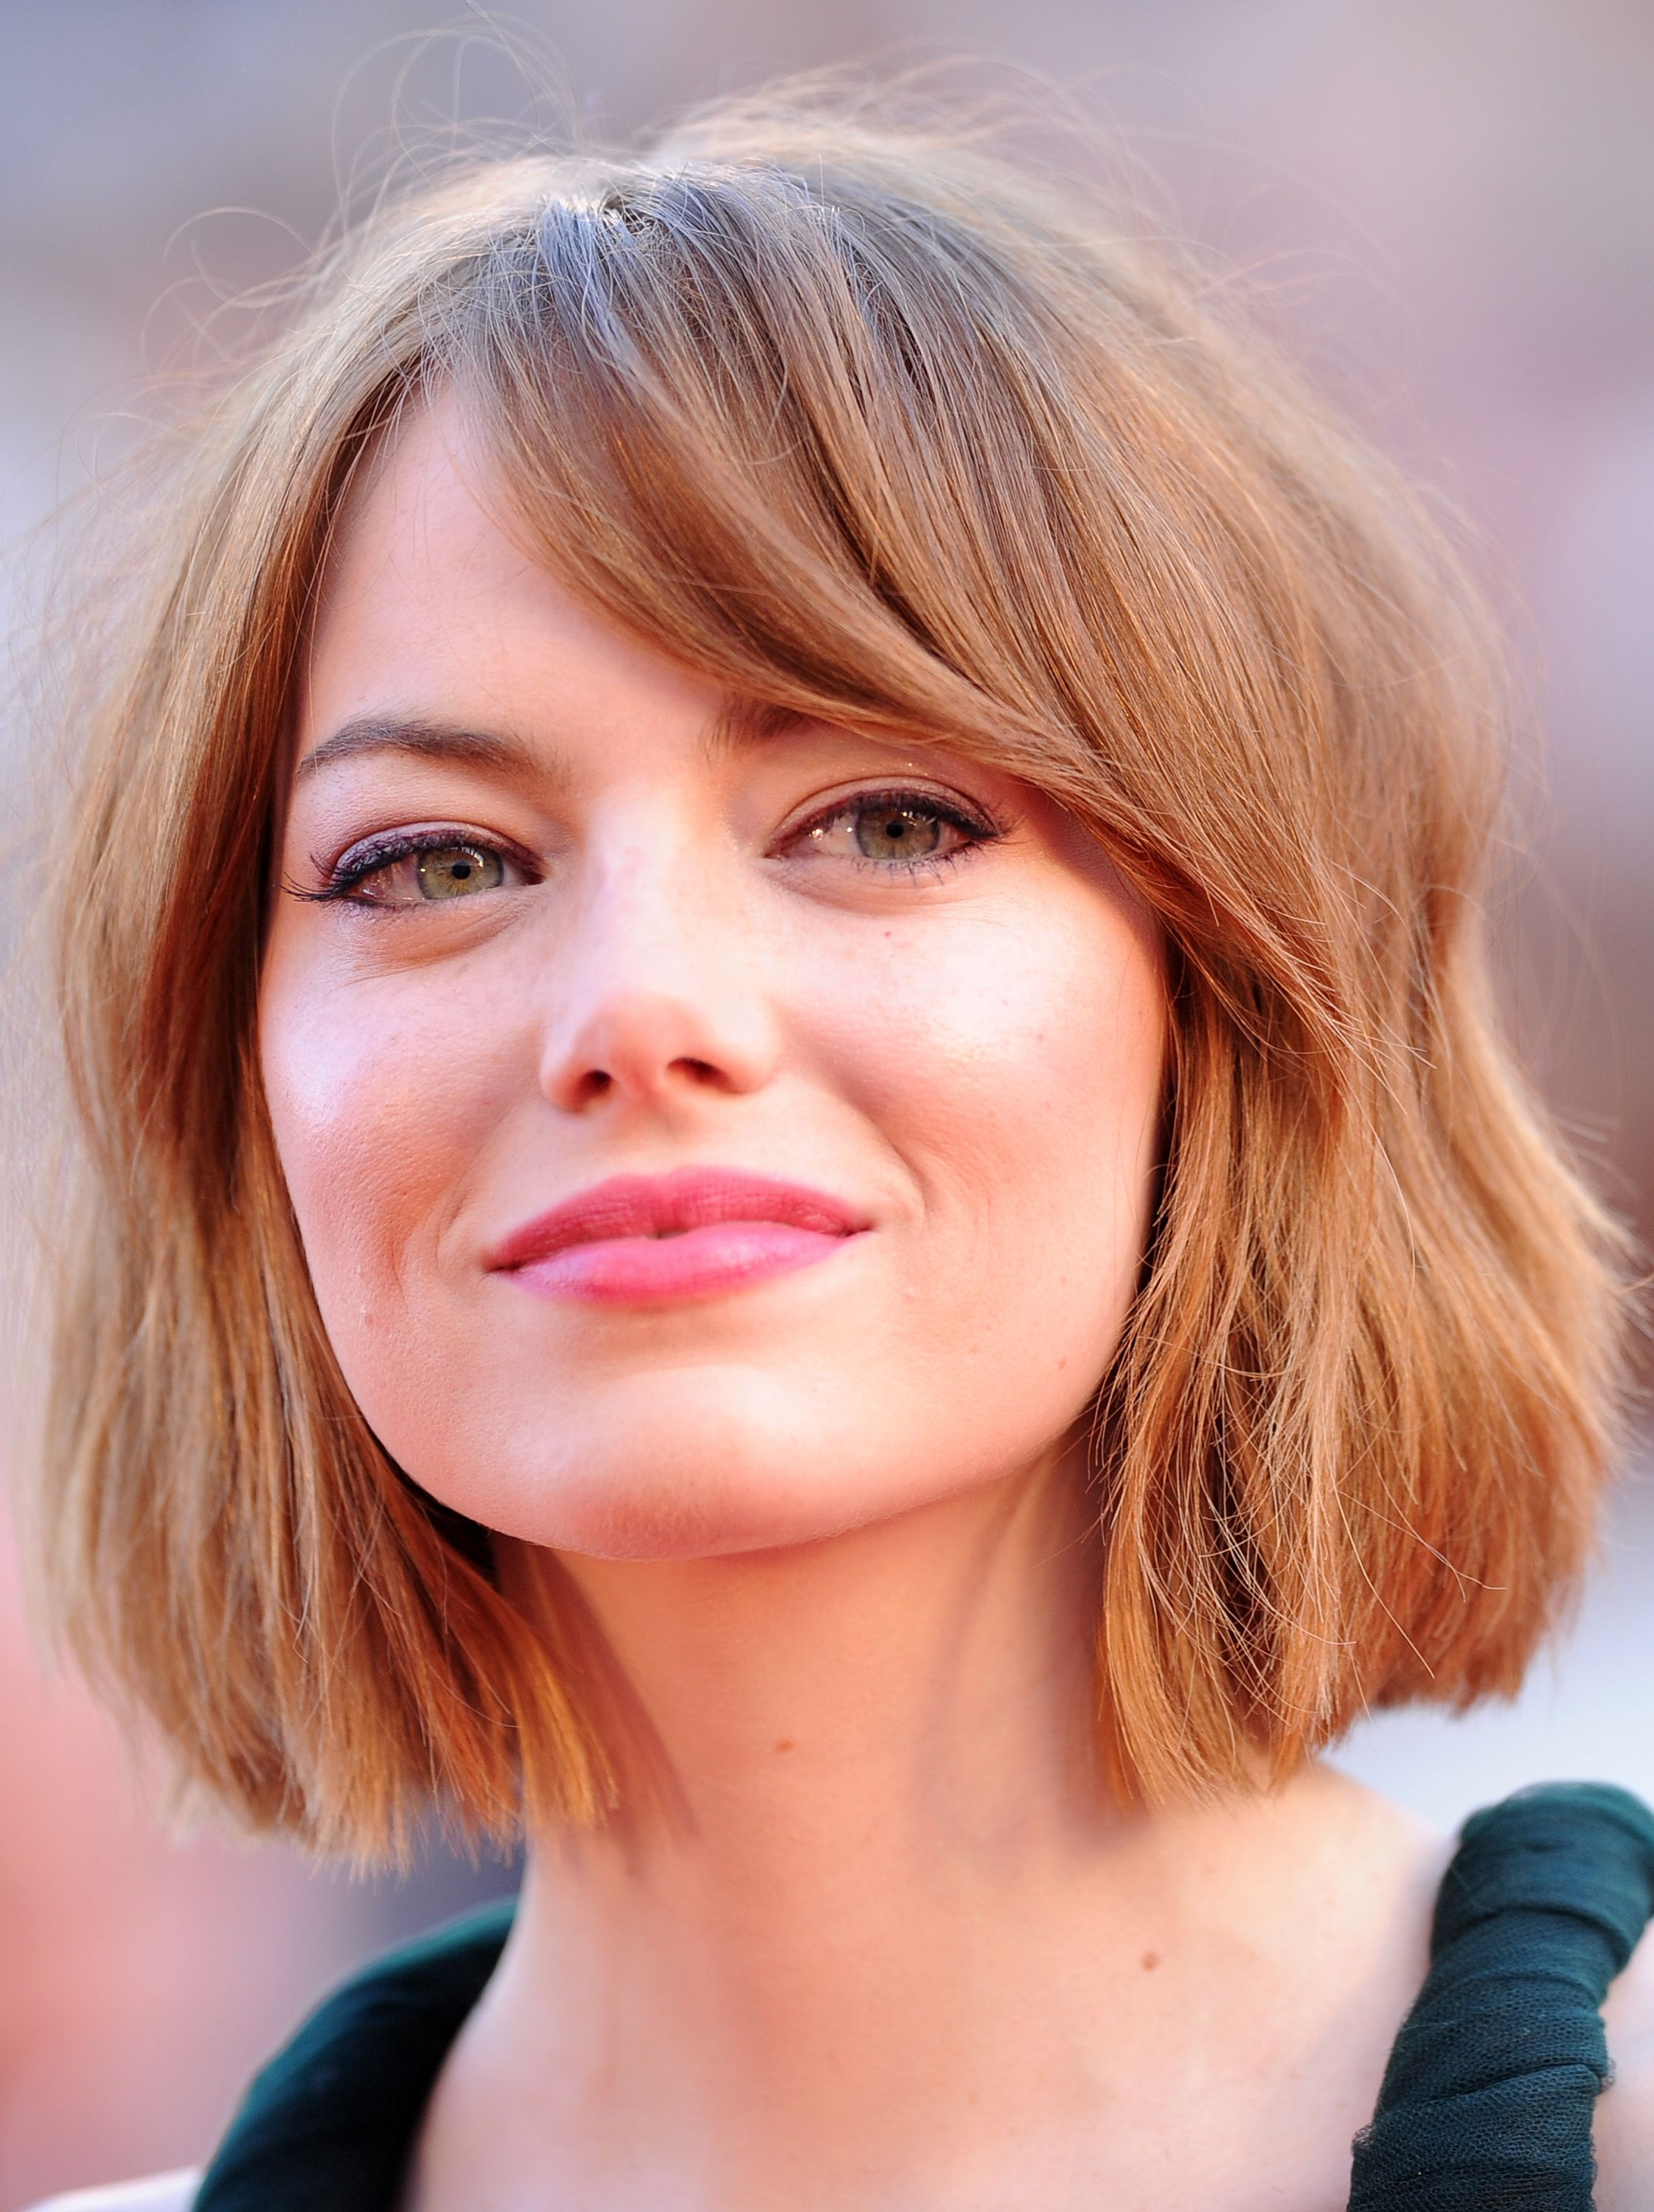 Bob hairstyles for 2018 - 50 short haircut trends to try now